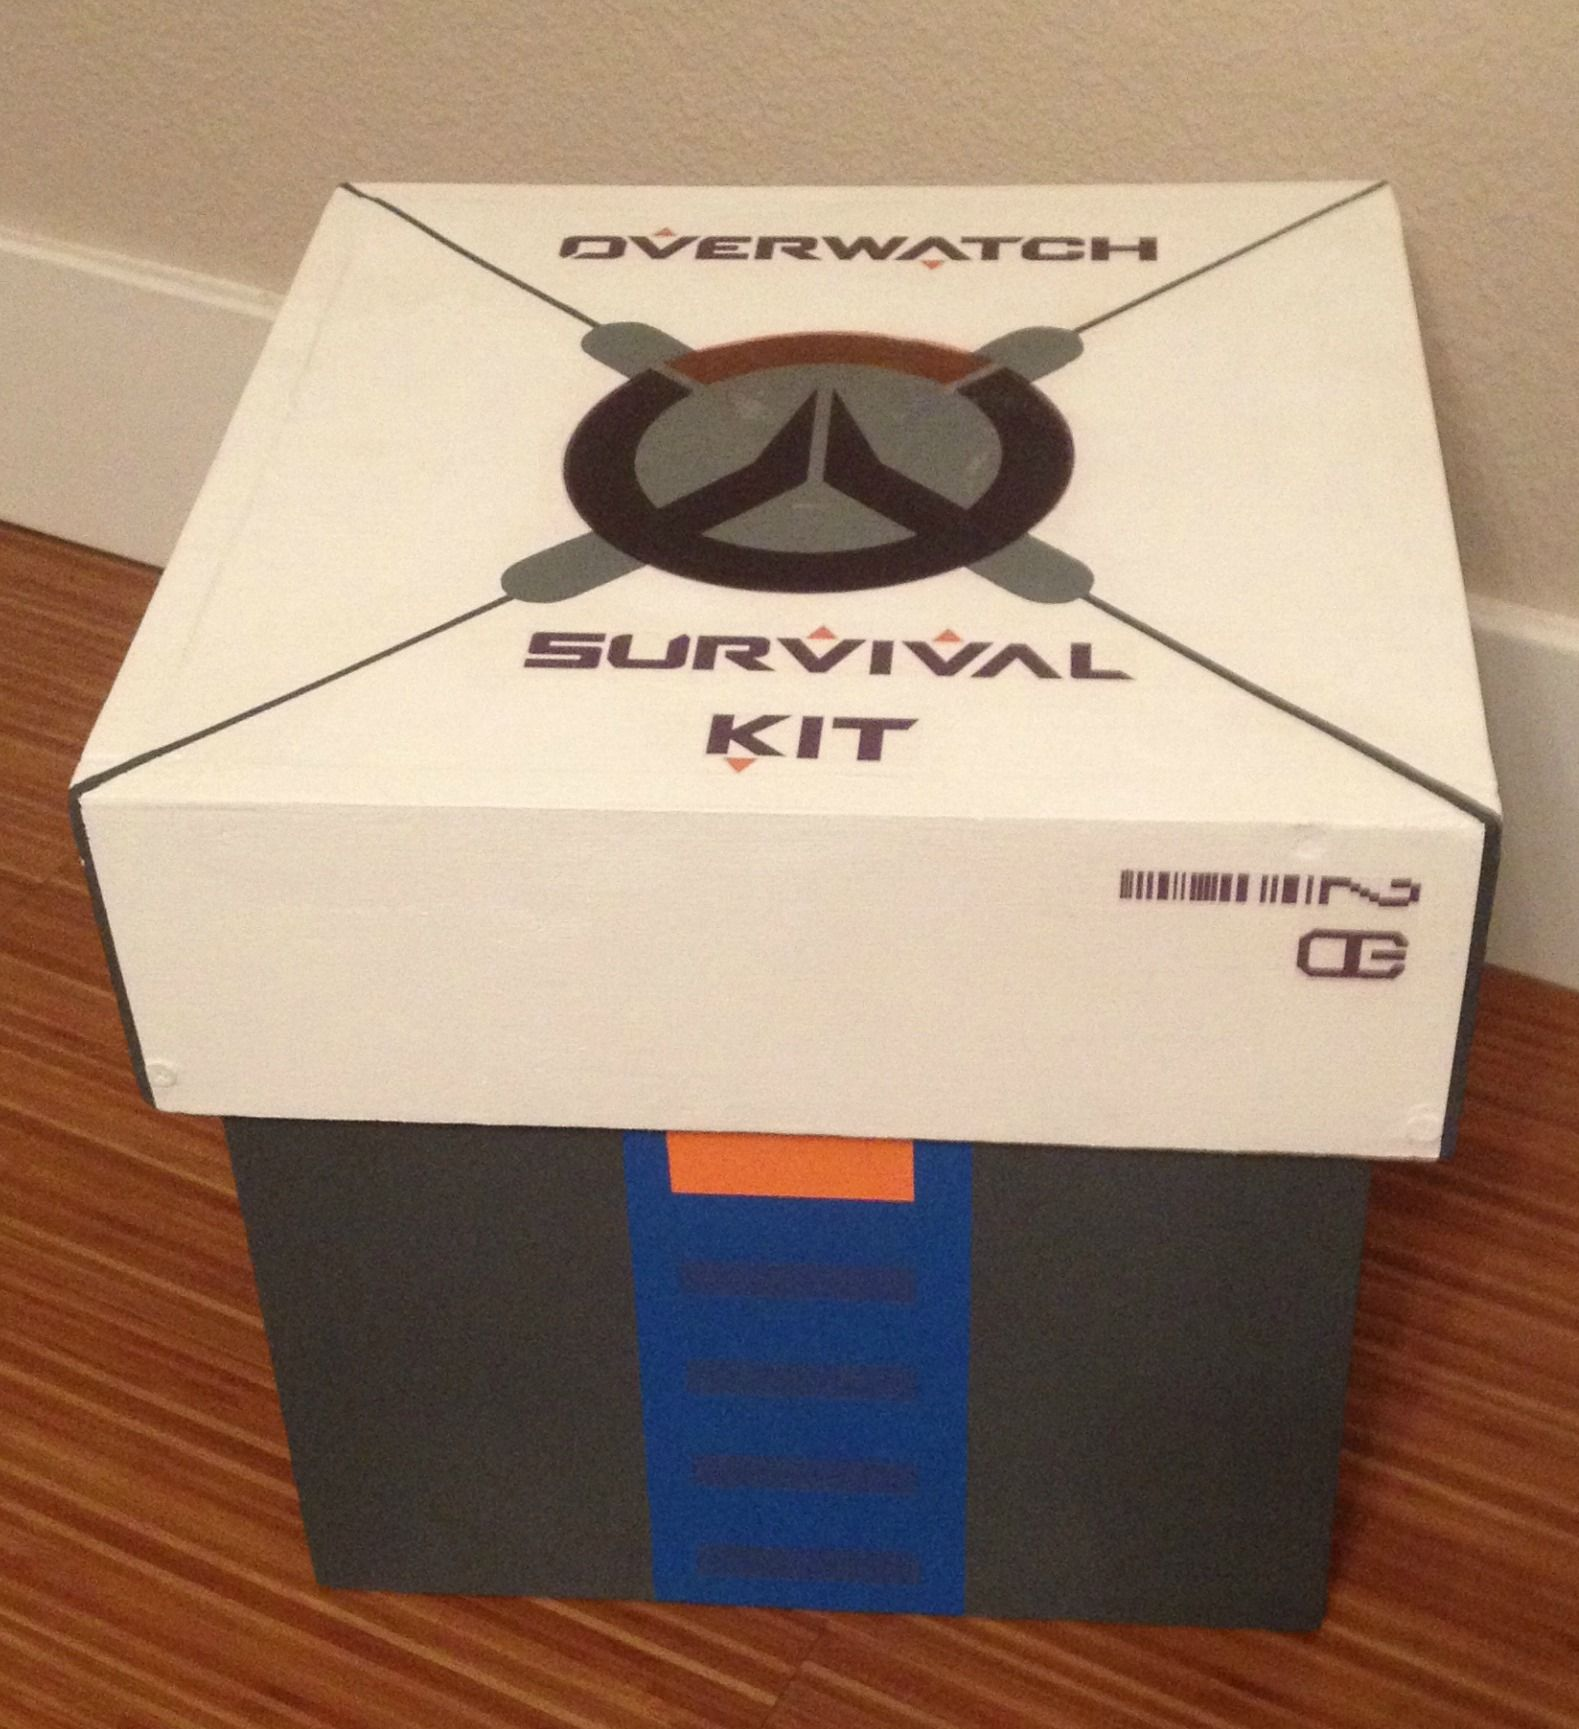 Real Life Overwatch Loot Box I Made As A Gift Http Www Giftideascorner Com Best Gifts For Gamer Gifts For Gamer Boyfriend Overwatch Birthday Overwatch Gifts